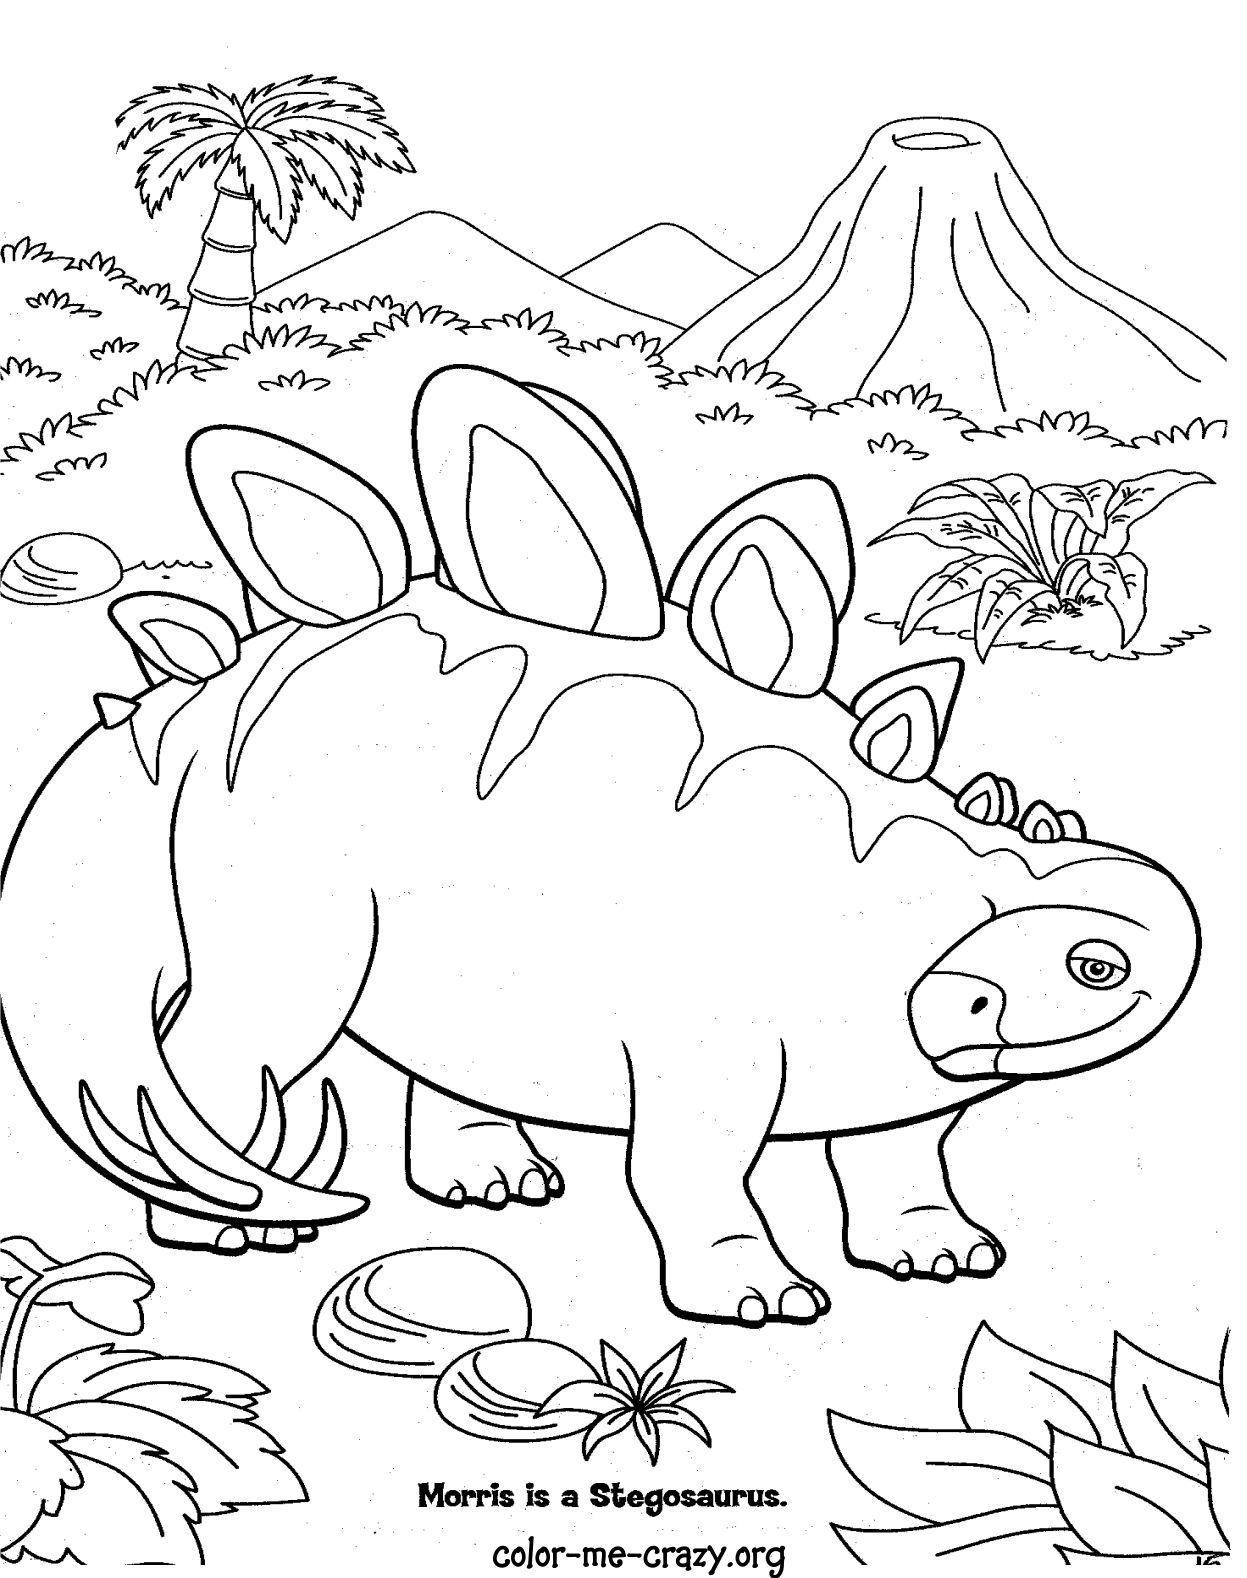 Dino Train Colouring Pages | kids stuff | Pinterest | Dino train